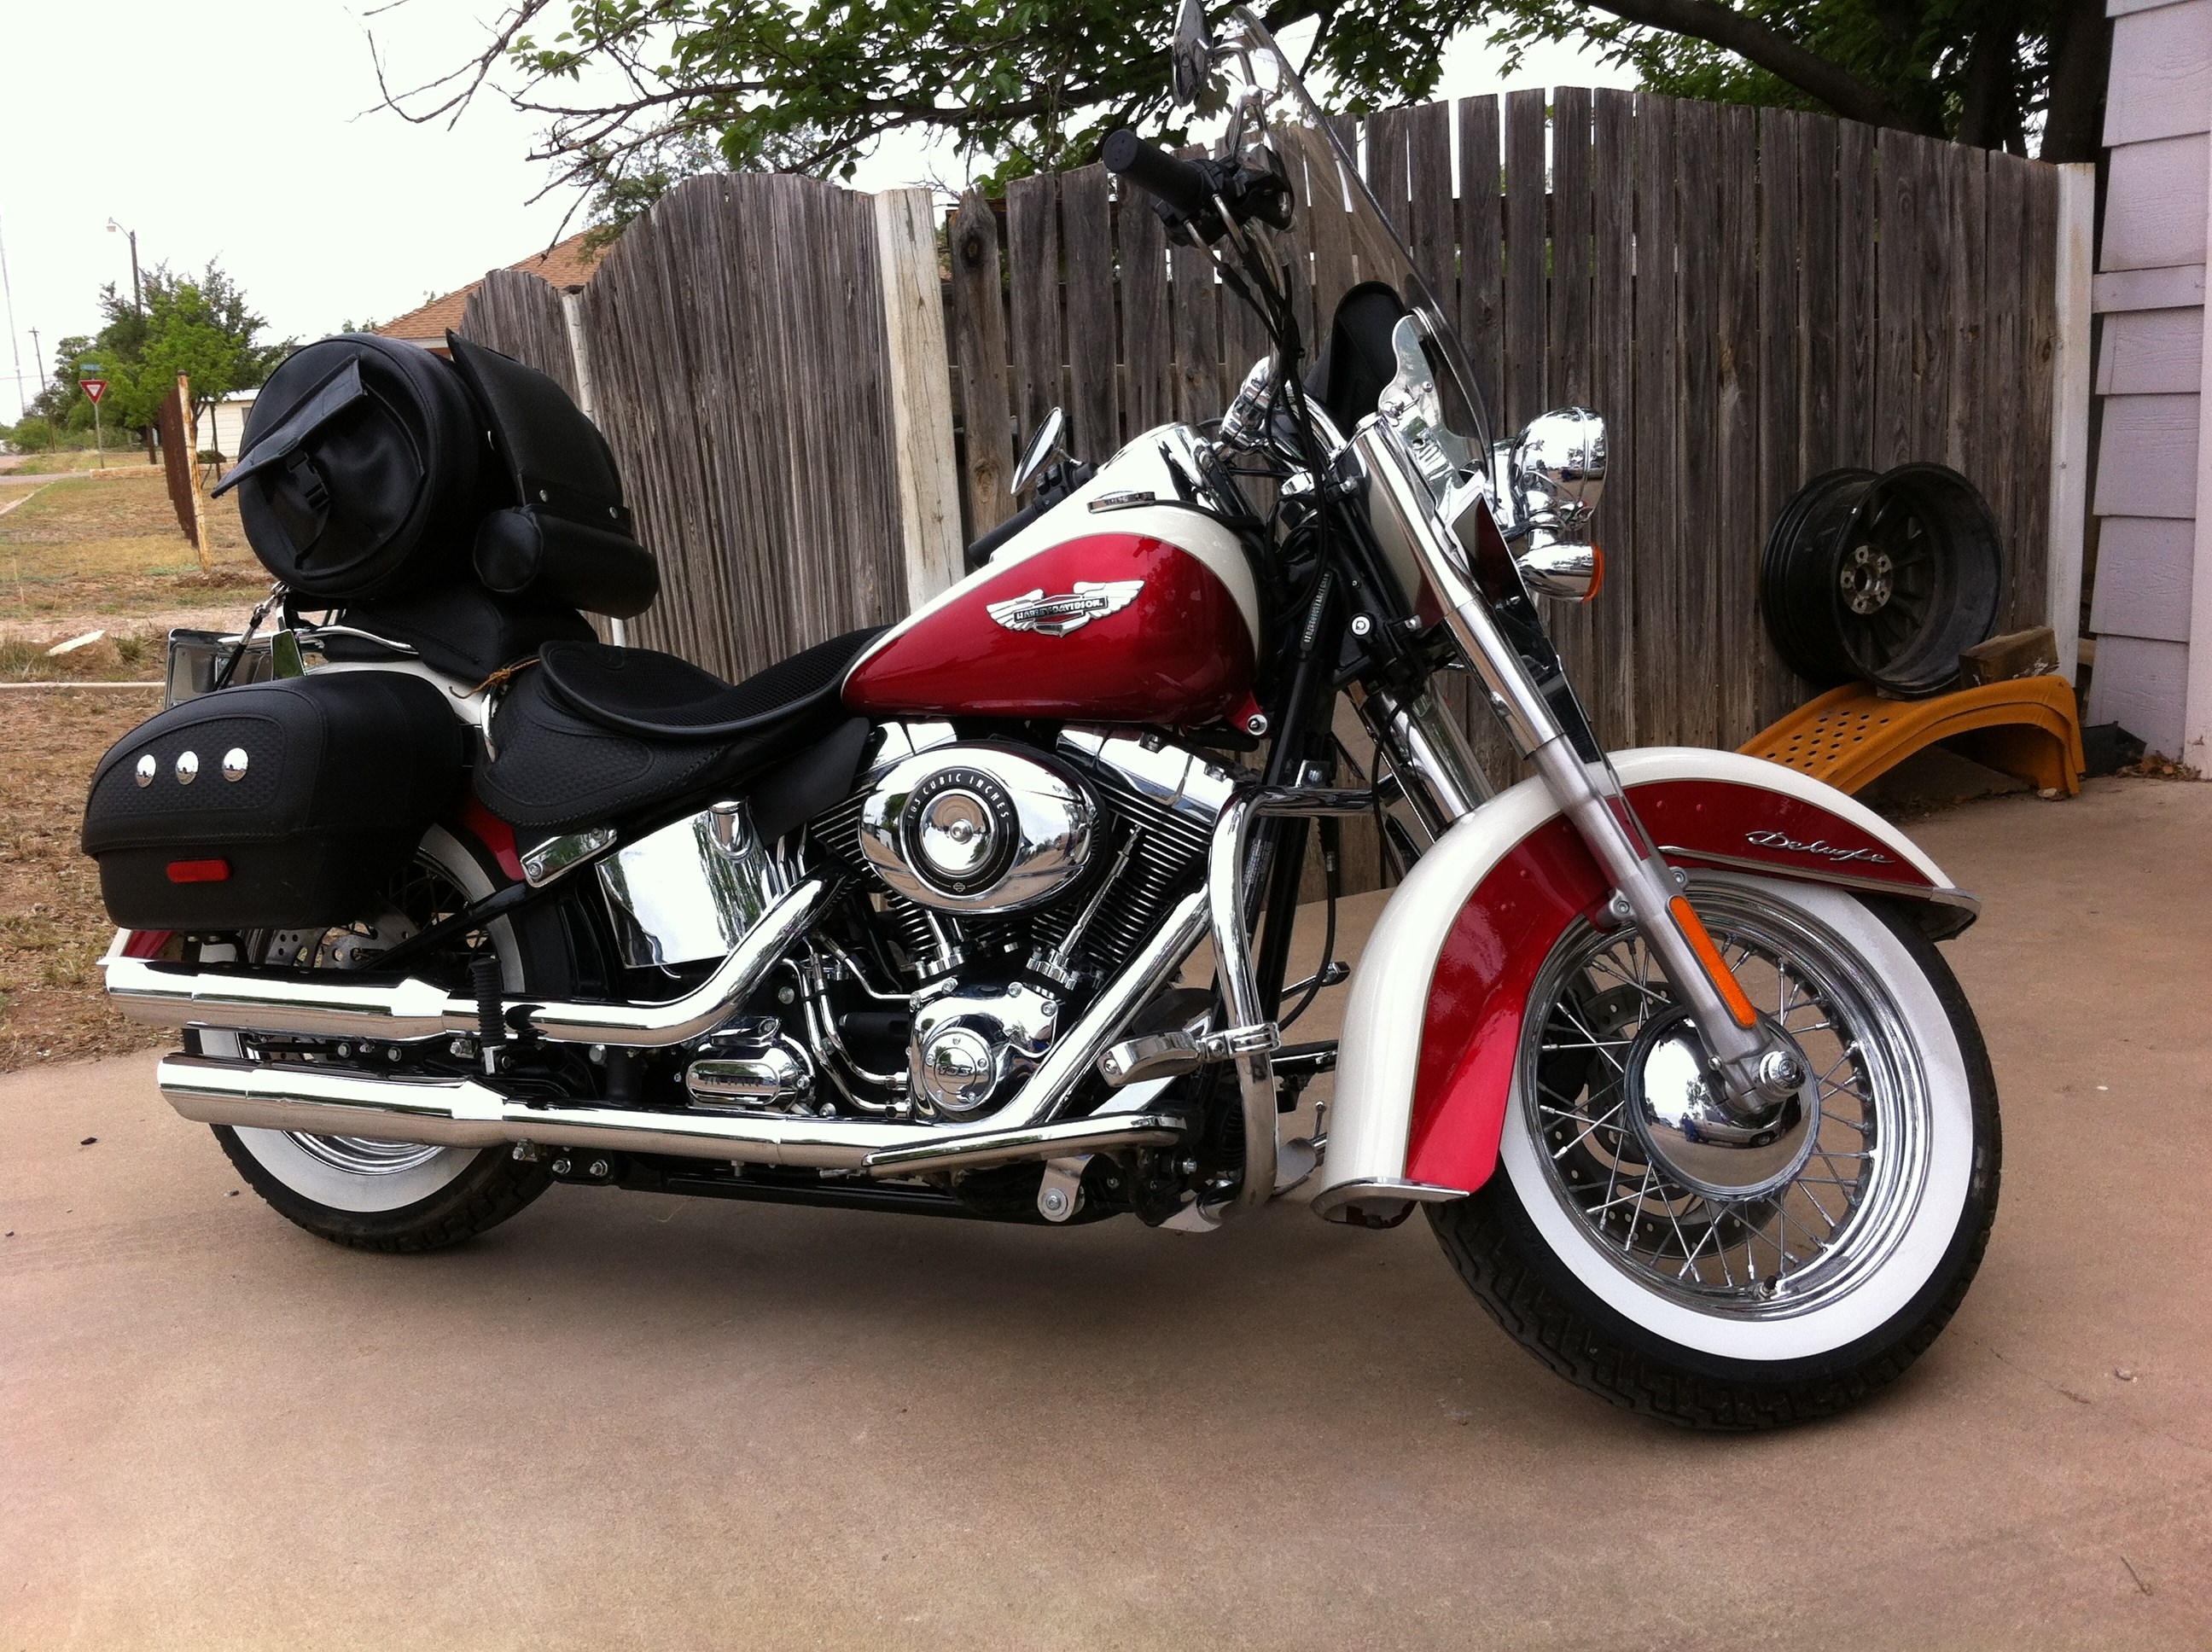 harley davidson softail deluxe for sale 671 bikes page 1 chopperexchange. Black Bedroom Furniture Sets. Home Design Ideas